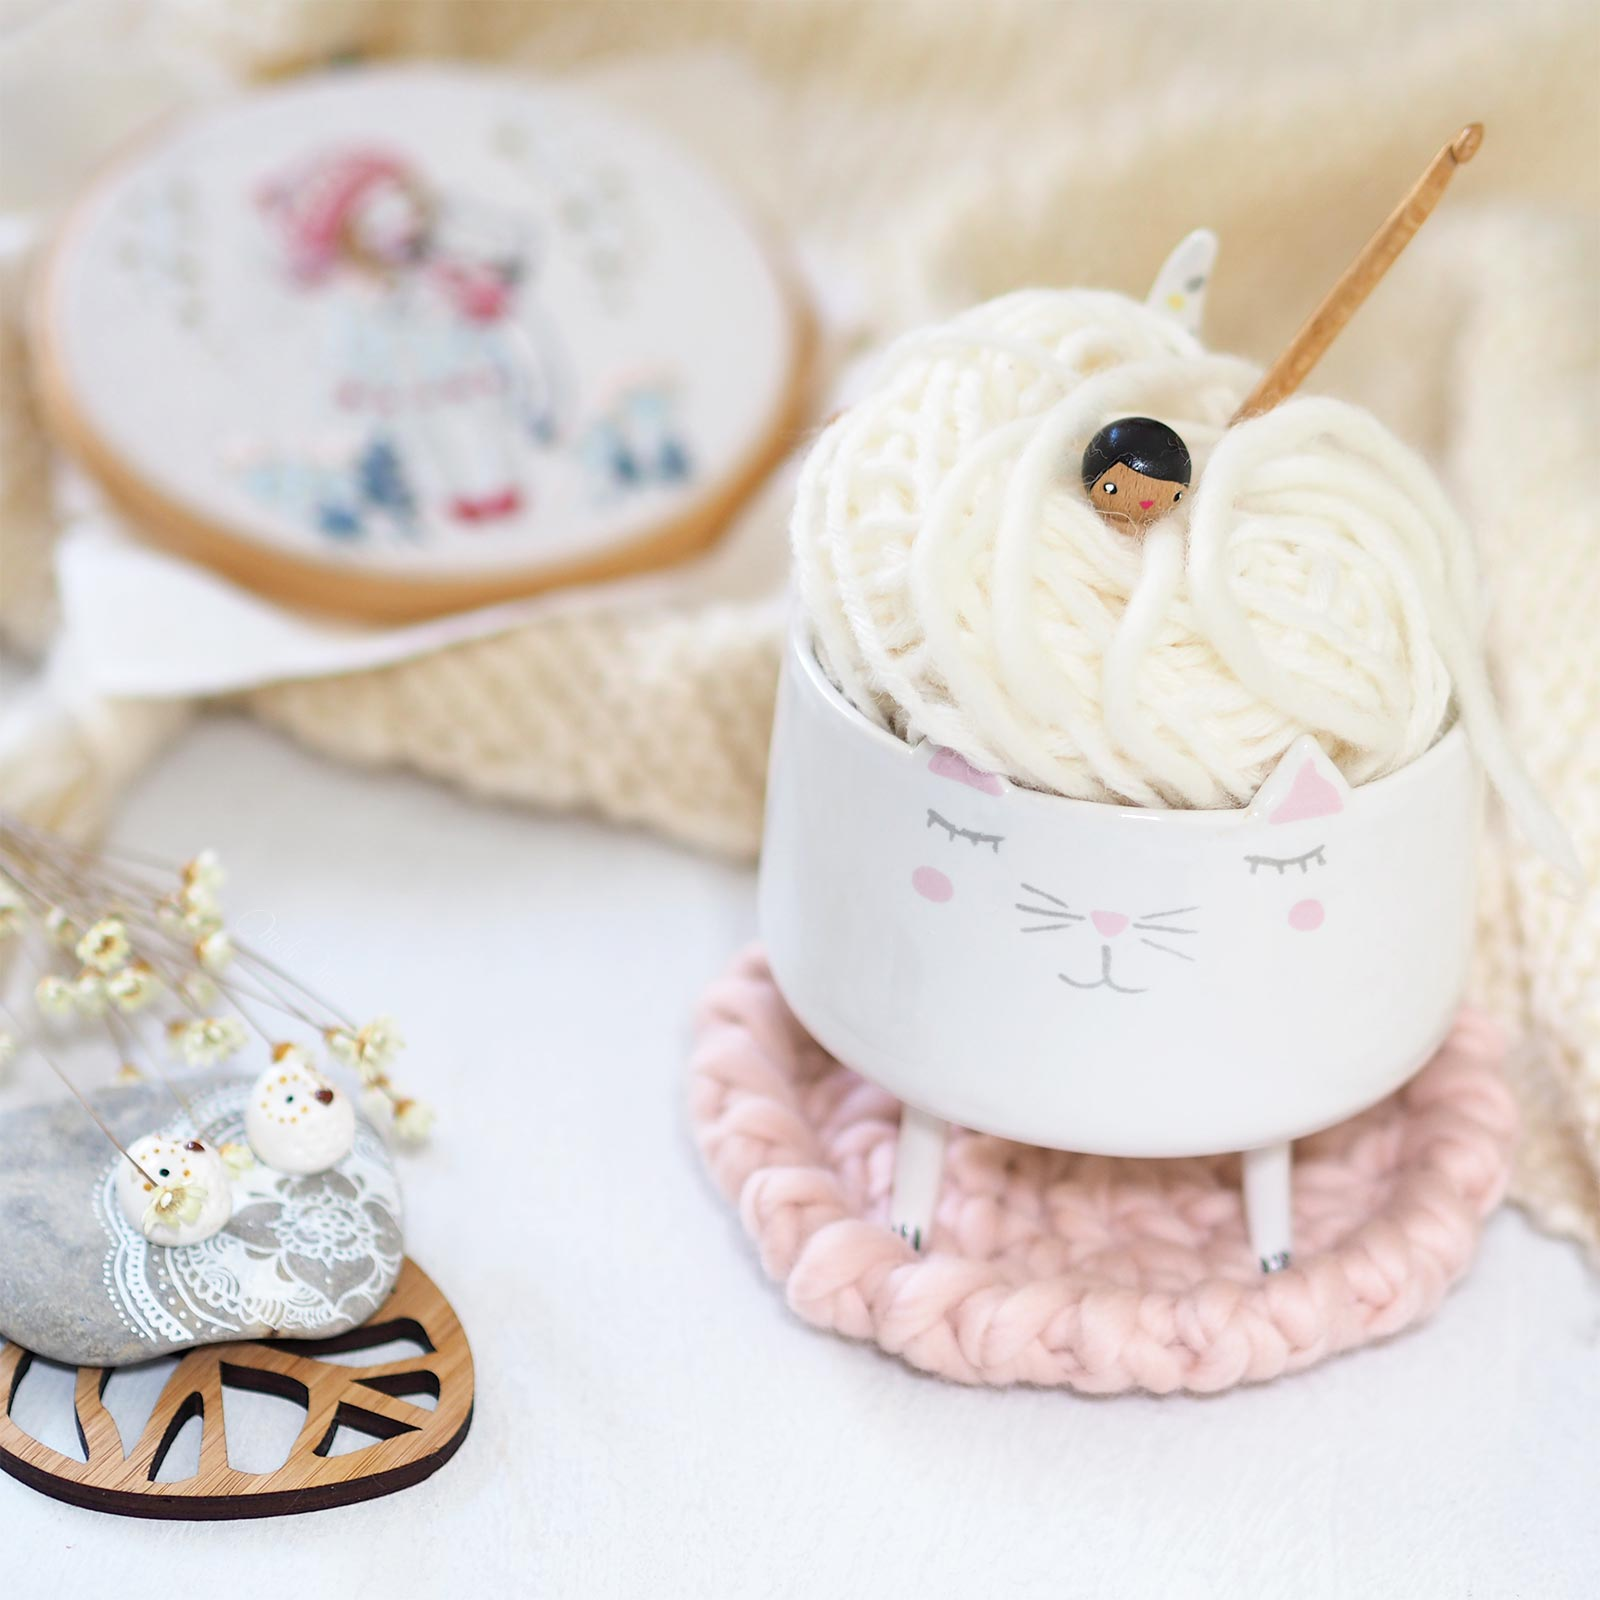 deco-cosy-laine-peruvienne-thewool-weareknitters-chat-ceramique-laboutiquedemelimelo